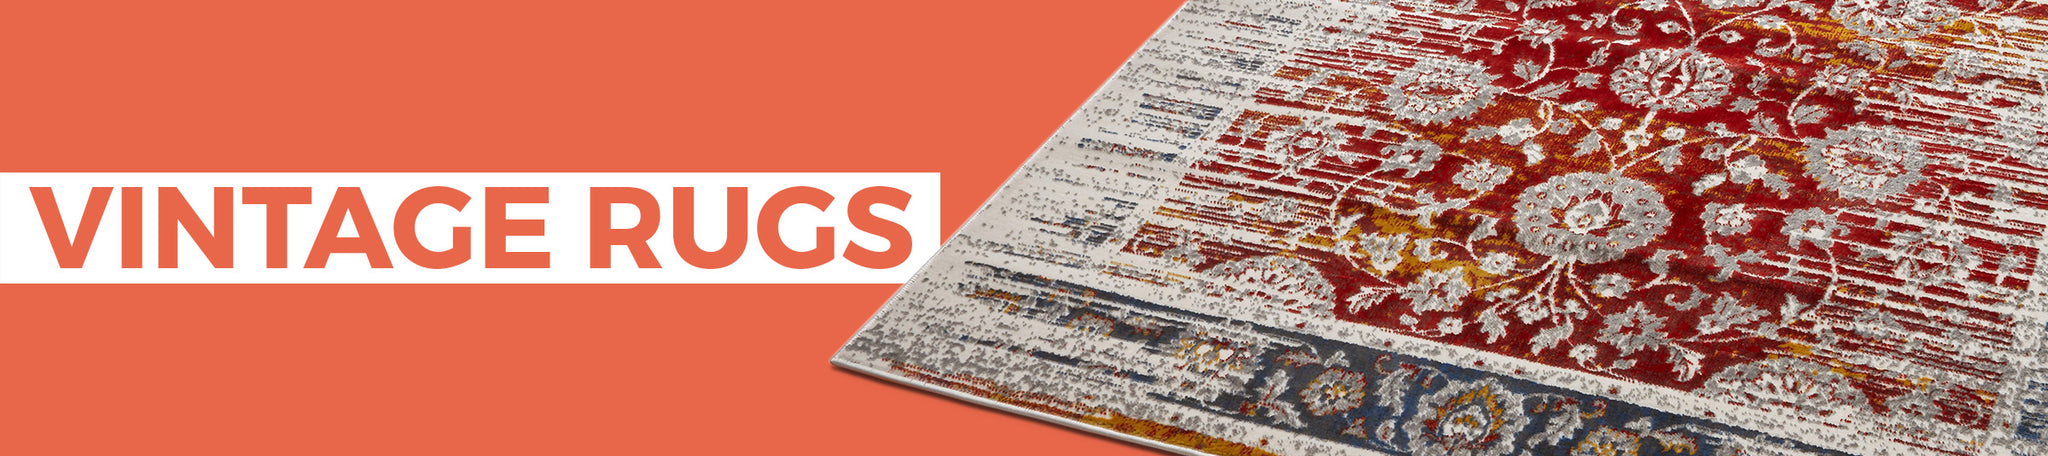 Vintage Rugs Collection from Well Woven